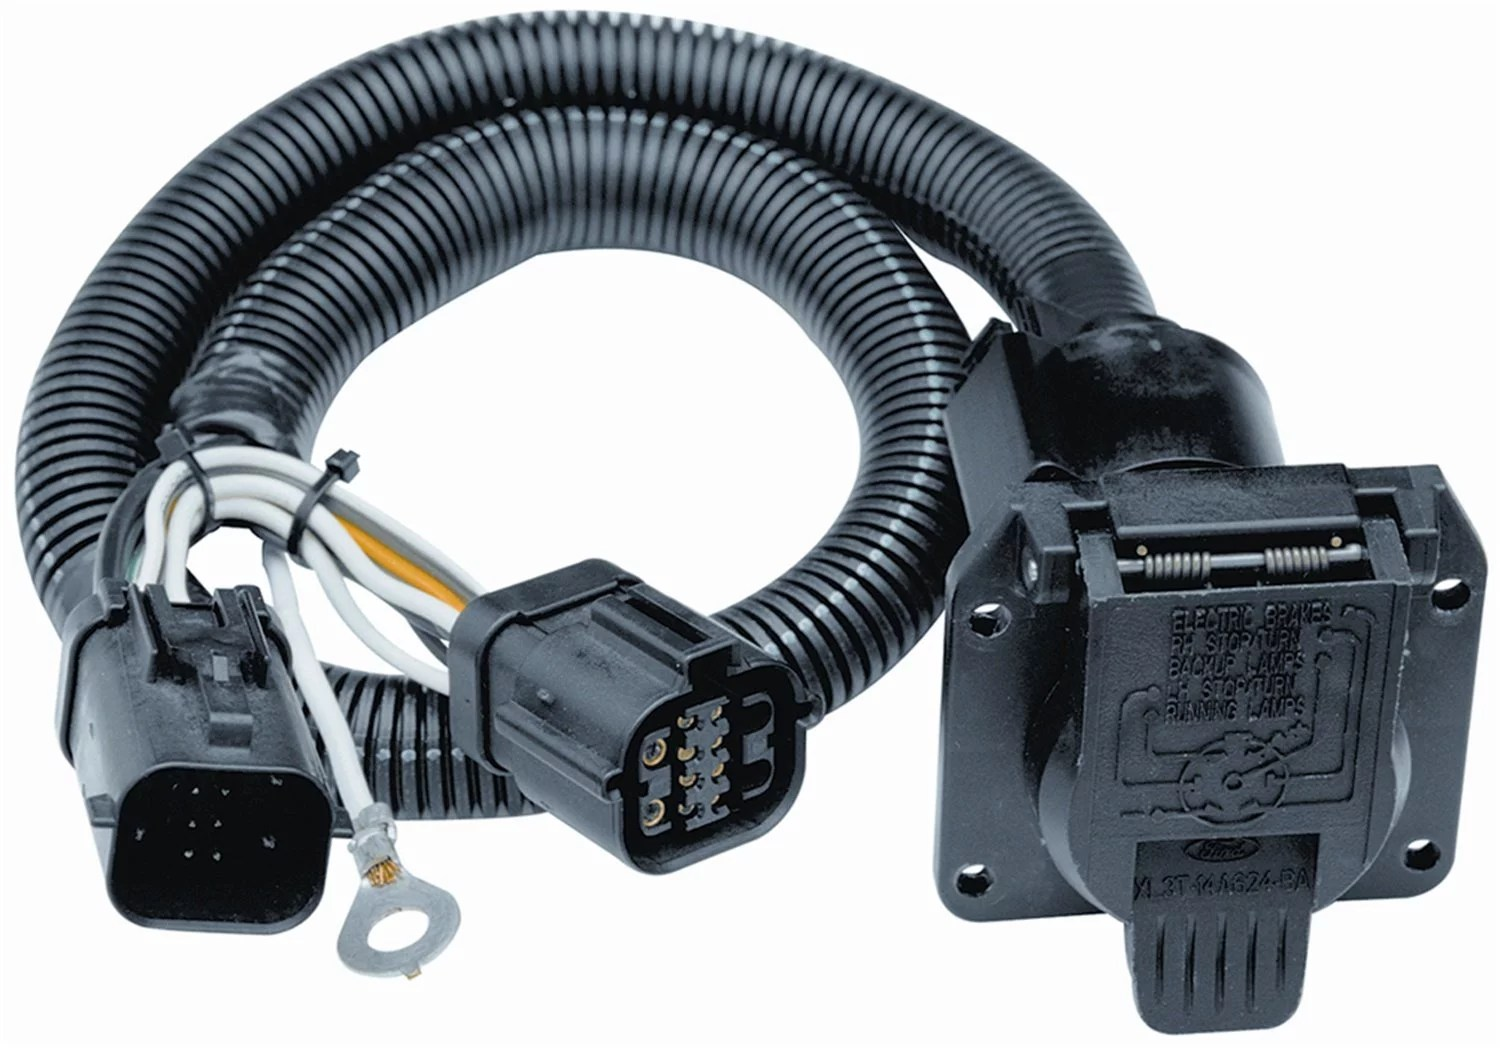 small resolution of chevy pickup oem tow package wiring harness detailed wiring diagrams trailer hitch wiring harness chevy pickup oem tow package wiring harness